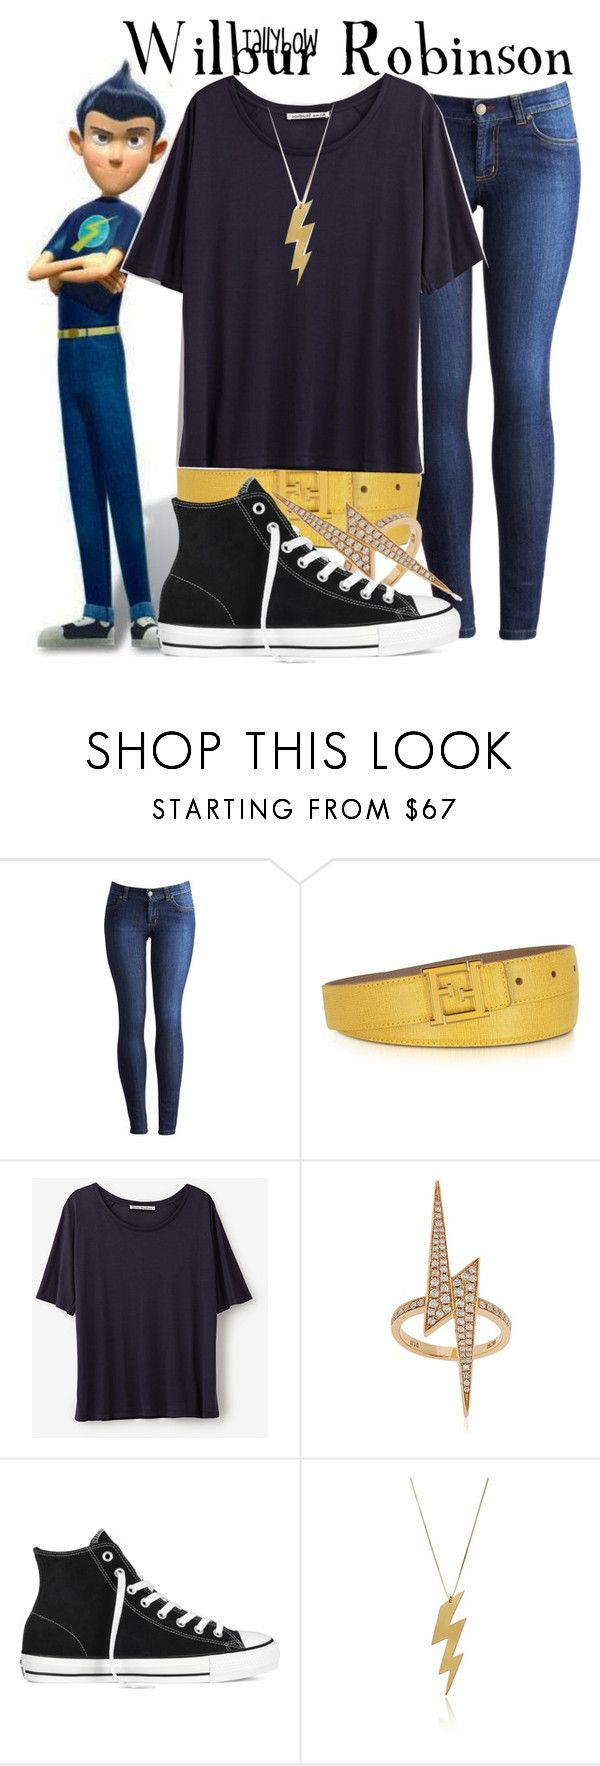 """Wilbur Robinson"" by tallybow ❤ liked on Polyvore featuring Joules, Fendi, Acne Studios, Anita Ko and Converse"